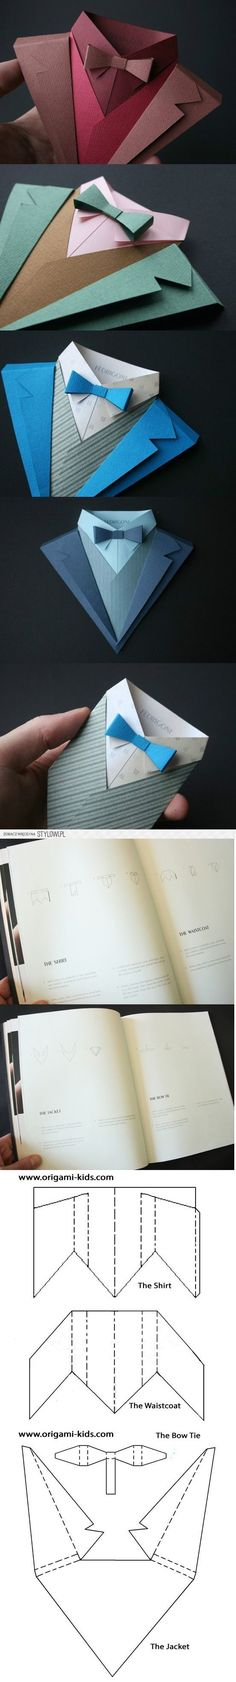 Paper shirt - great for weddings and parties - origami diy Origami Paper, Diy Paper, Paper Art, Paper Crafts, Origami Shirt, Easy Origami, Origami Ideas, Hobbies And Crafts, Diy And Crafts